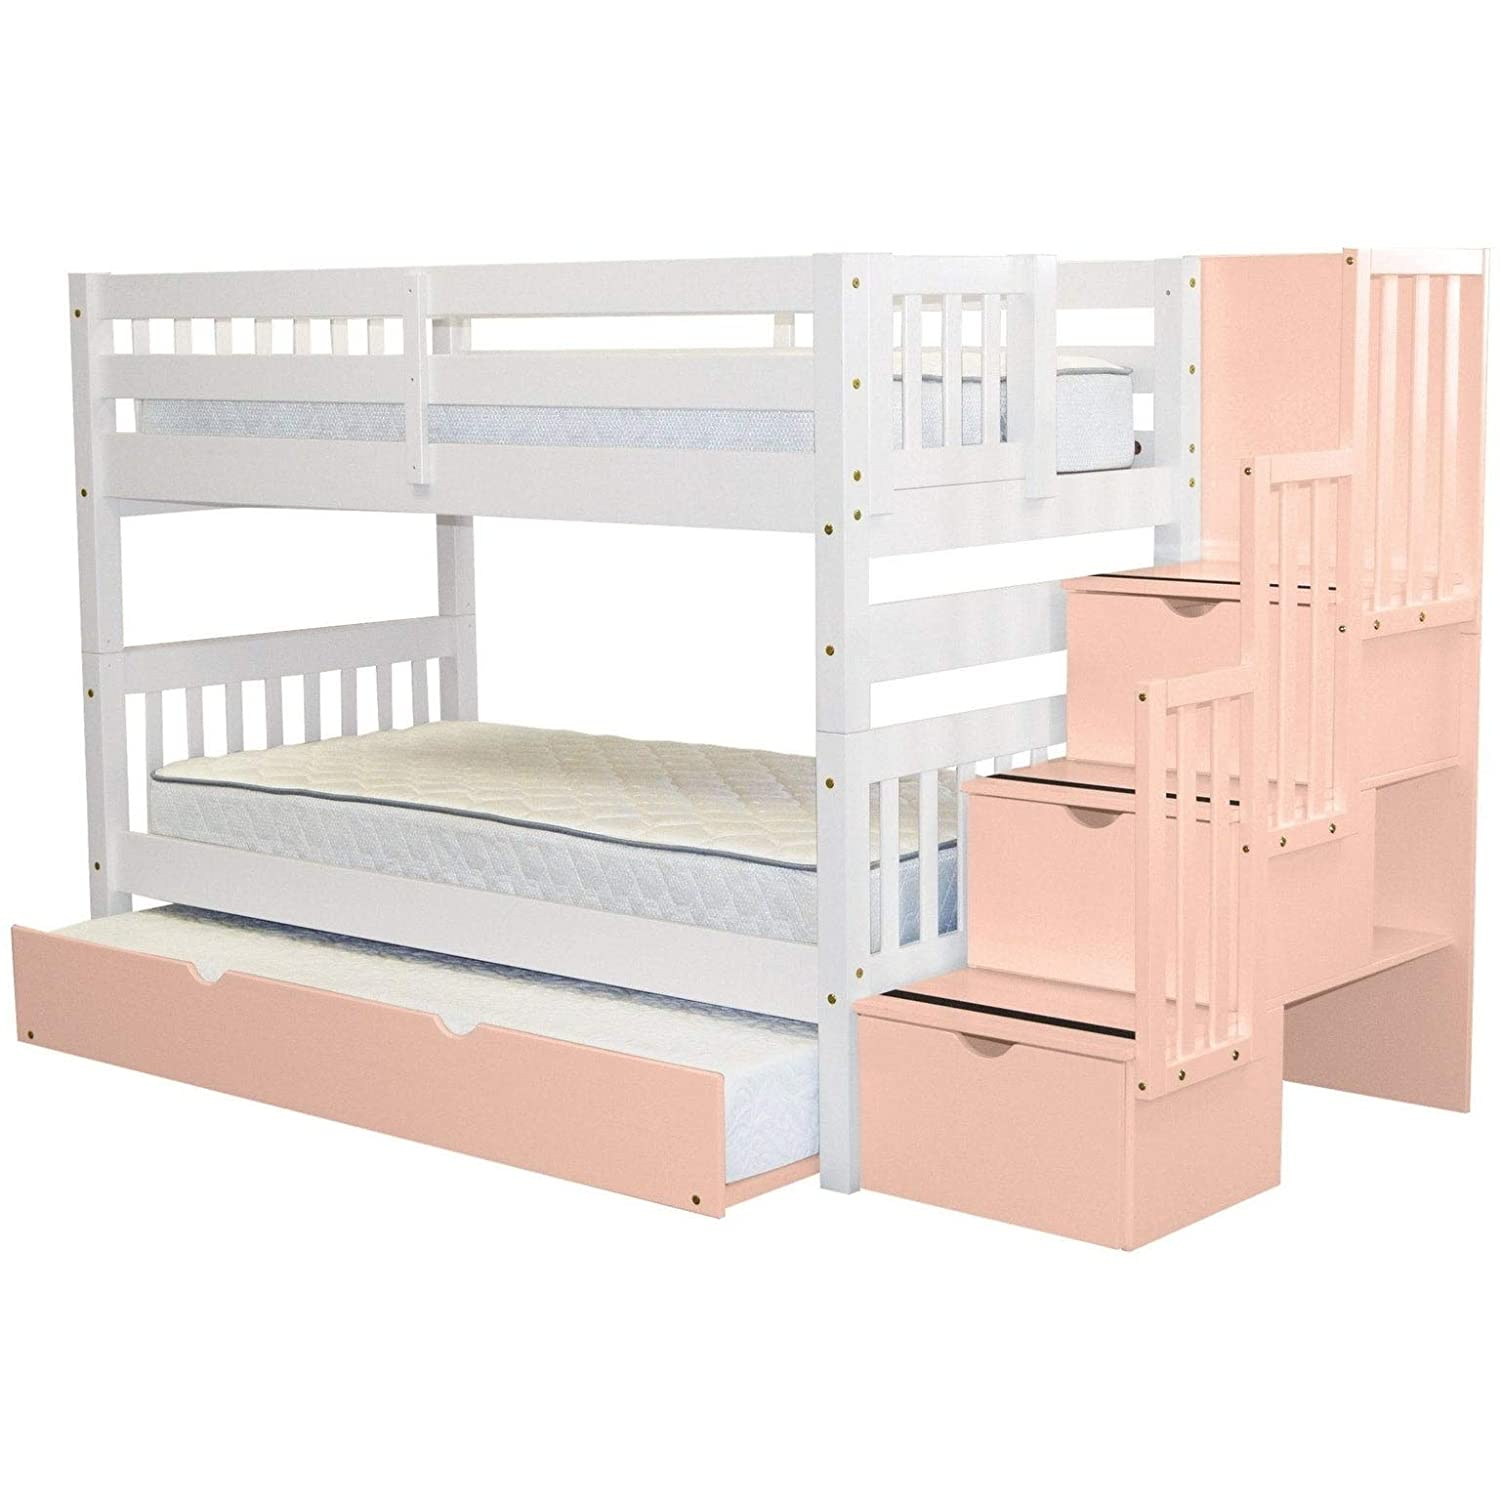 Jusol kids bunk bed with Trundle White BUNK Bed for Kids